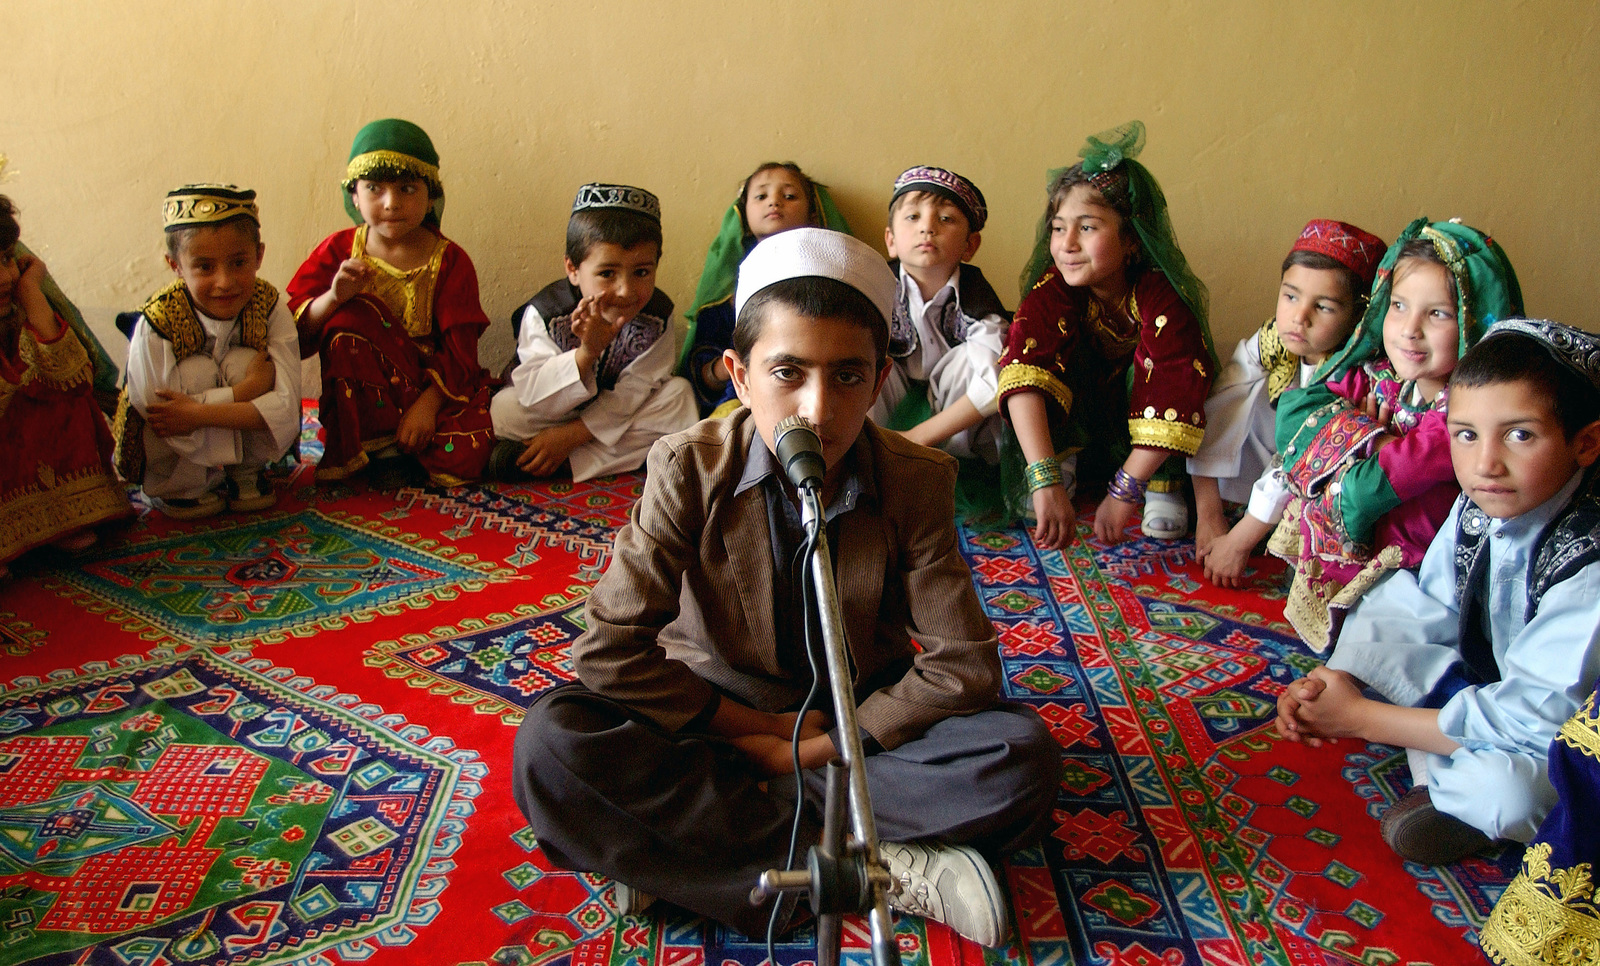 A young Afghani boy leads a song performed by students at the Asheiy School in Kabul, Afghanistan, during their International Children's Day Celebration. The songs were primarily about freedom from the Taliban and the promise of a better future